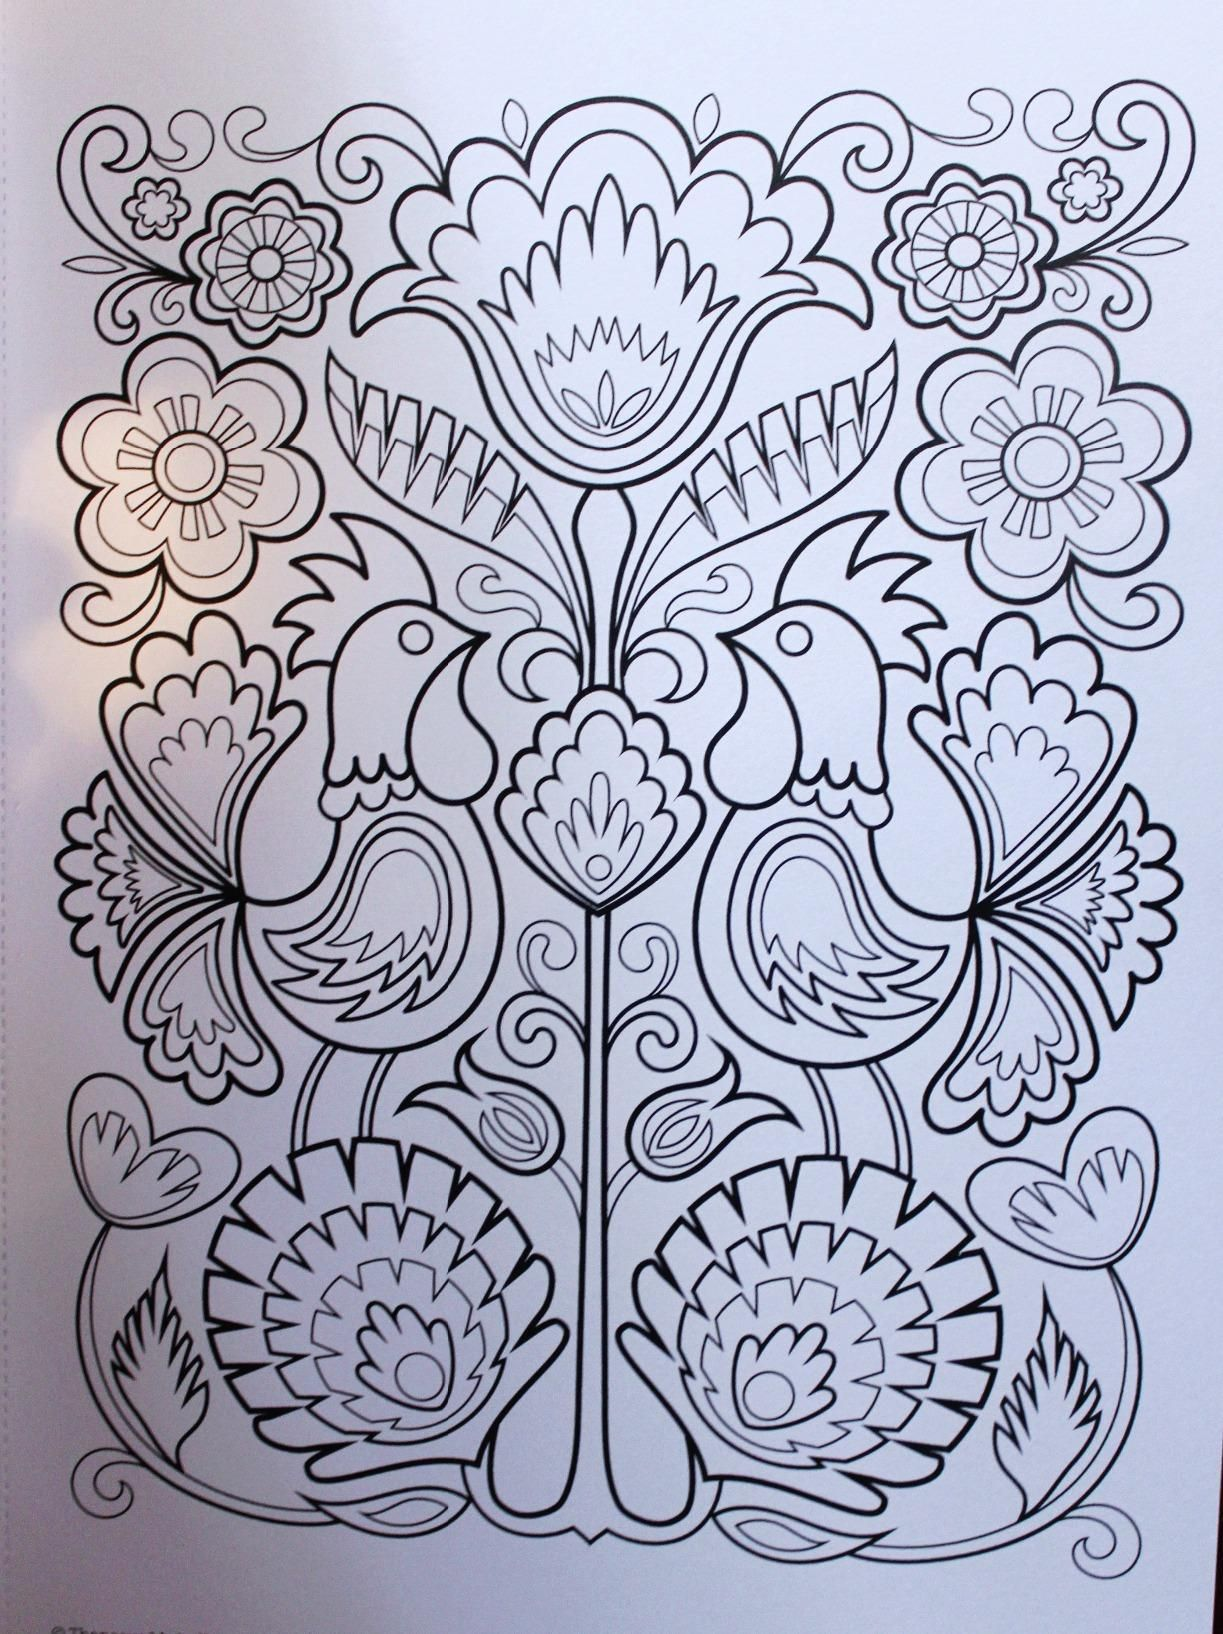 Amazon.com: Don't Worry, Be Happy Coloring Book Treasury ...